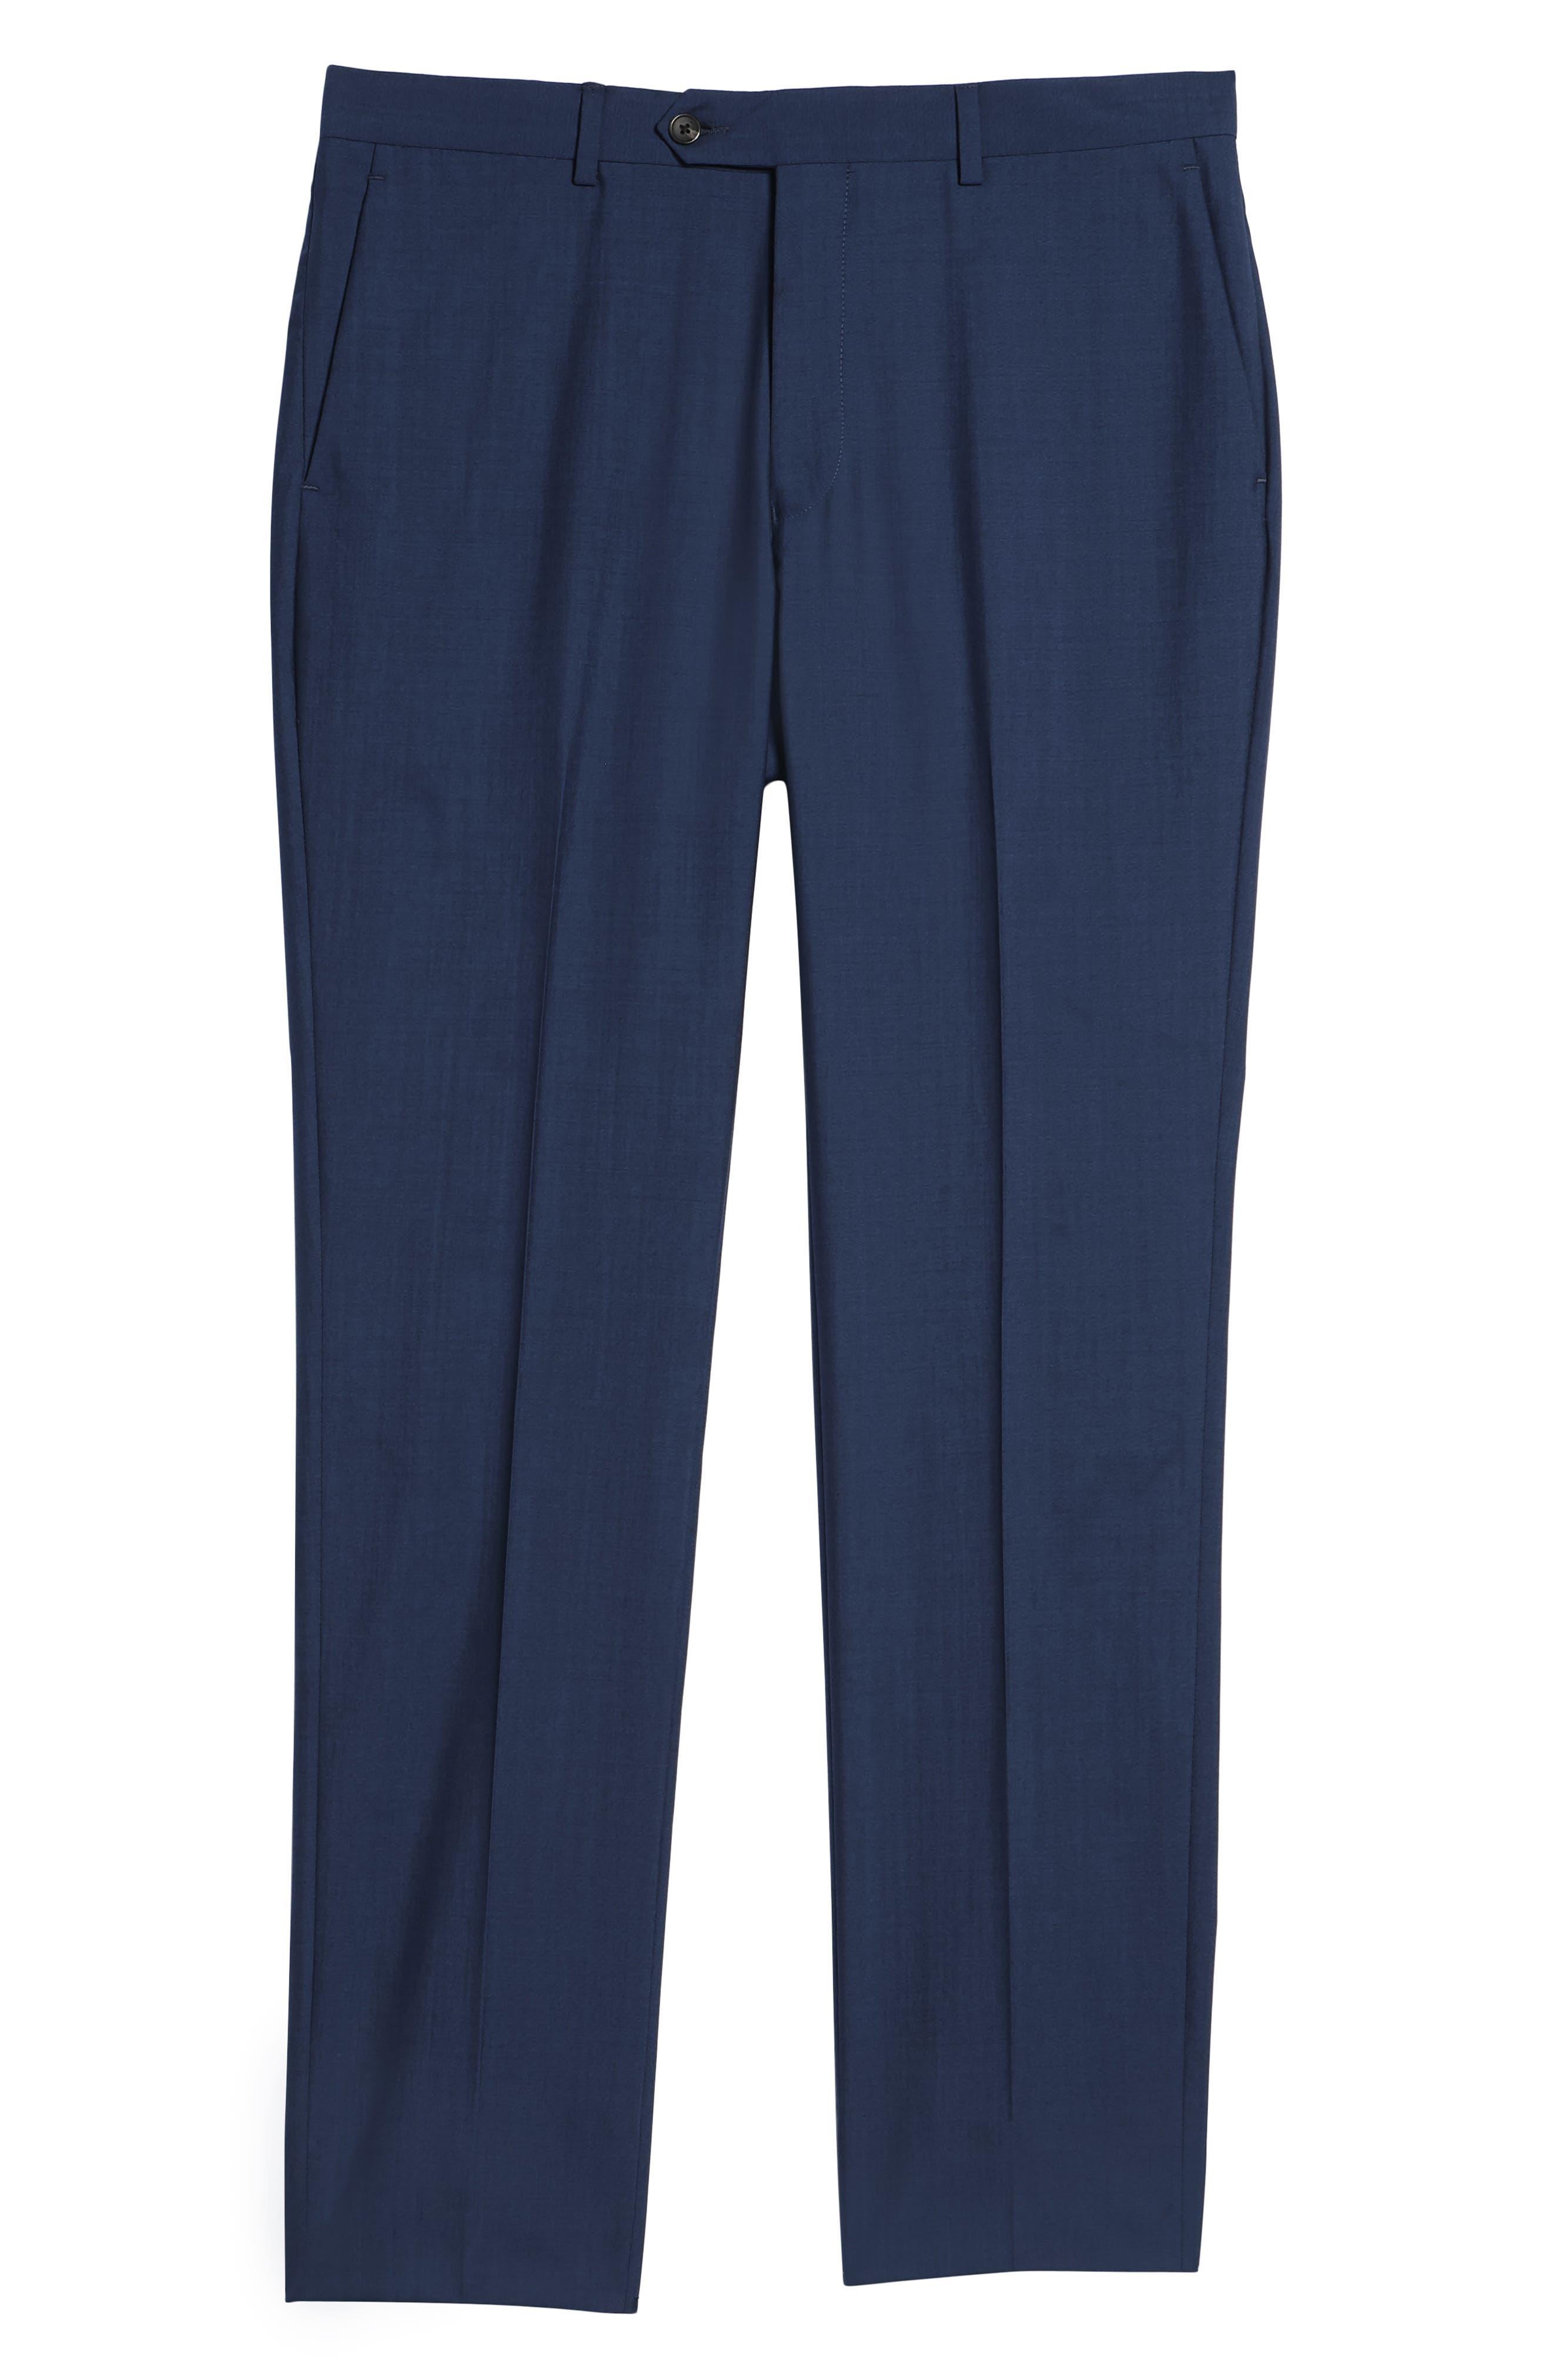 Dagger Flat Front Solid Wool Trousers,                             Alternate thumbnail 6, color,                             High Blue